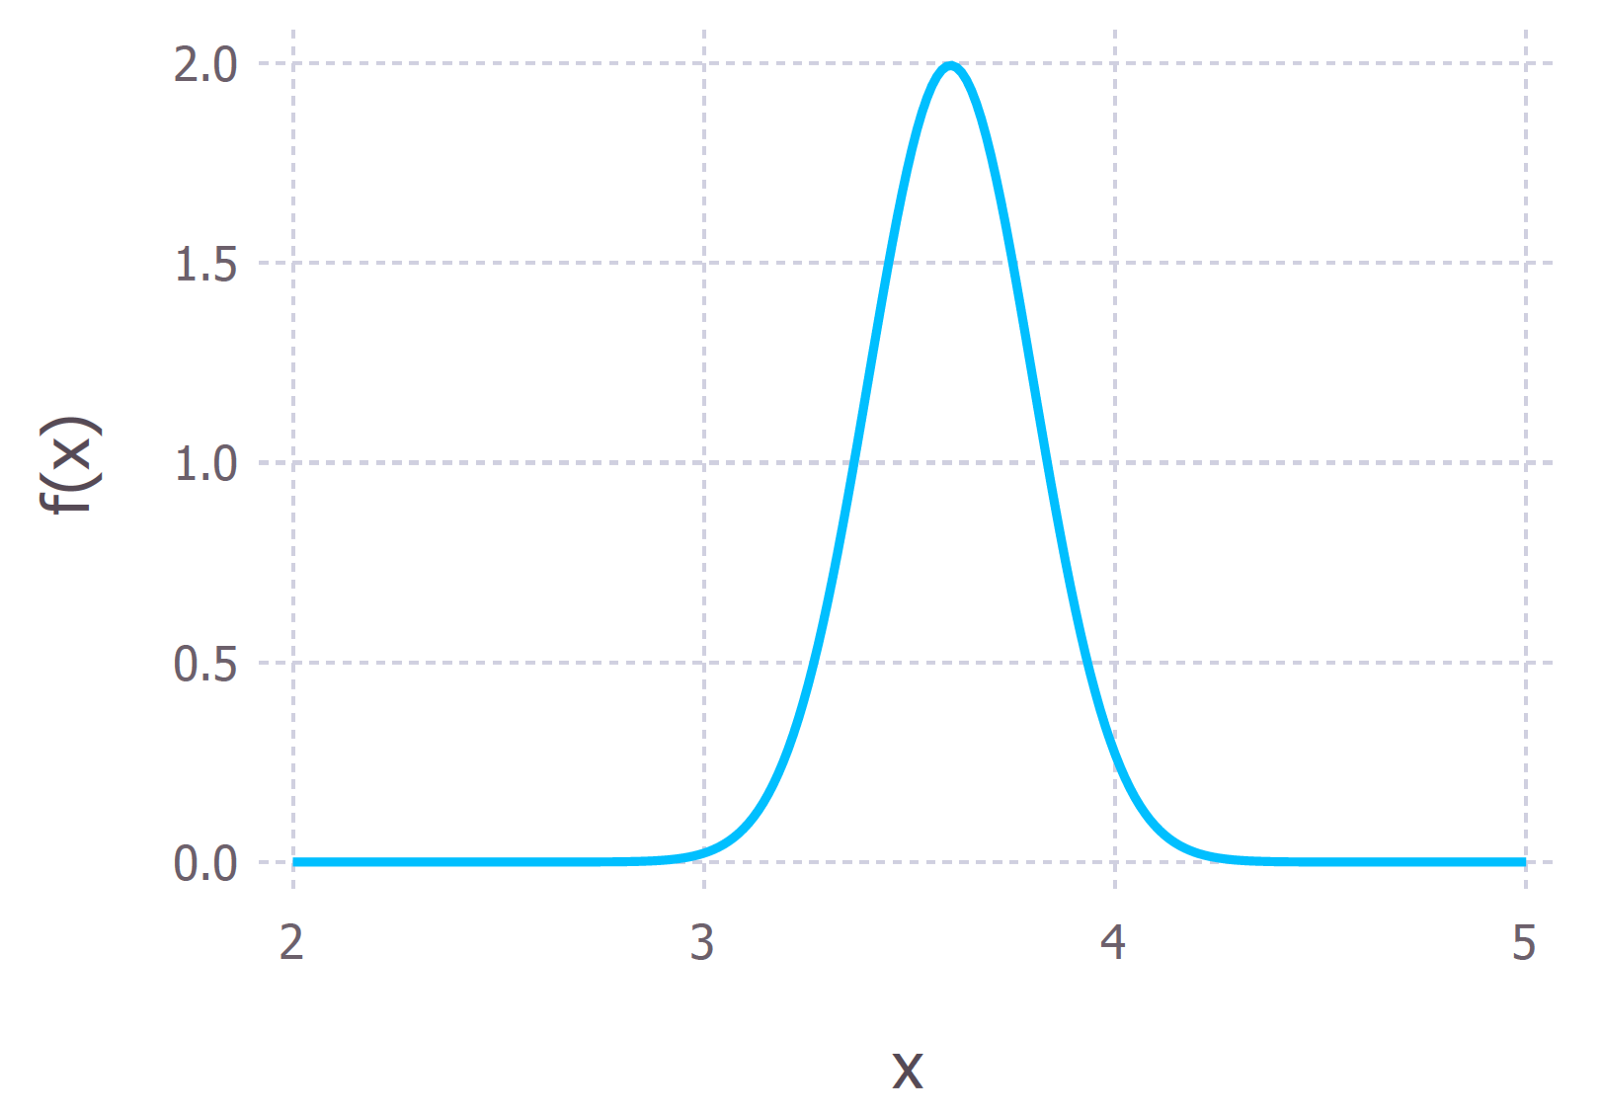 Probability Concepts Explained Bayesian Inference For Parameter The Figure Below Shows A Near Final Schematic Of Filter I39ve Made Our Prior Length Hydrogen Bond This Is Represented By Gaussian Distribution With Mean 36 And Standard Deviation 02